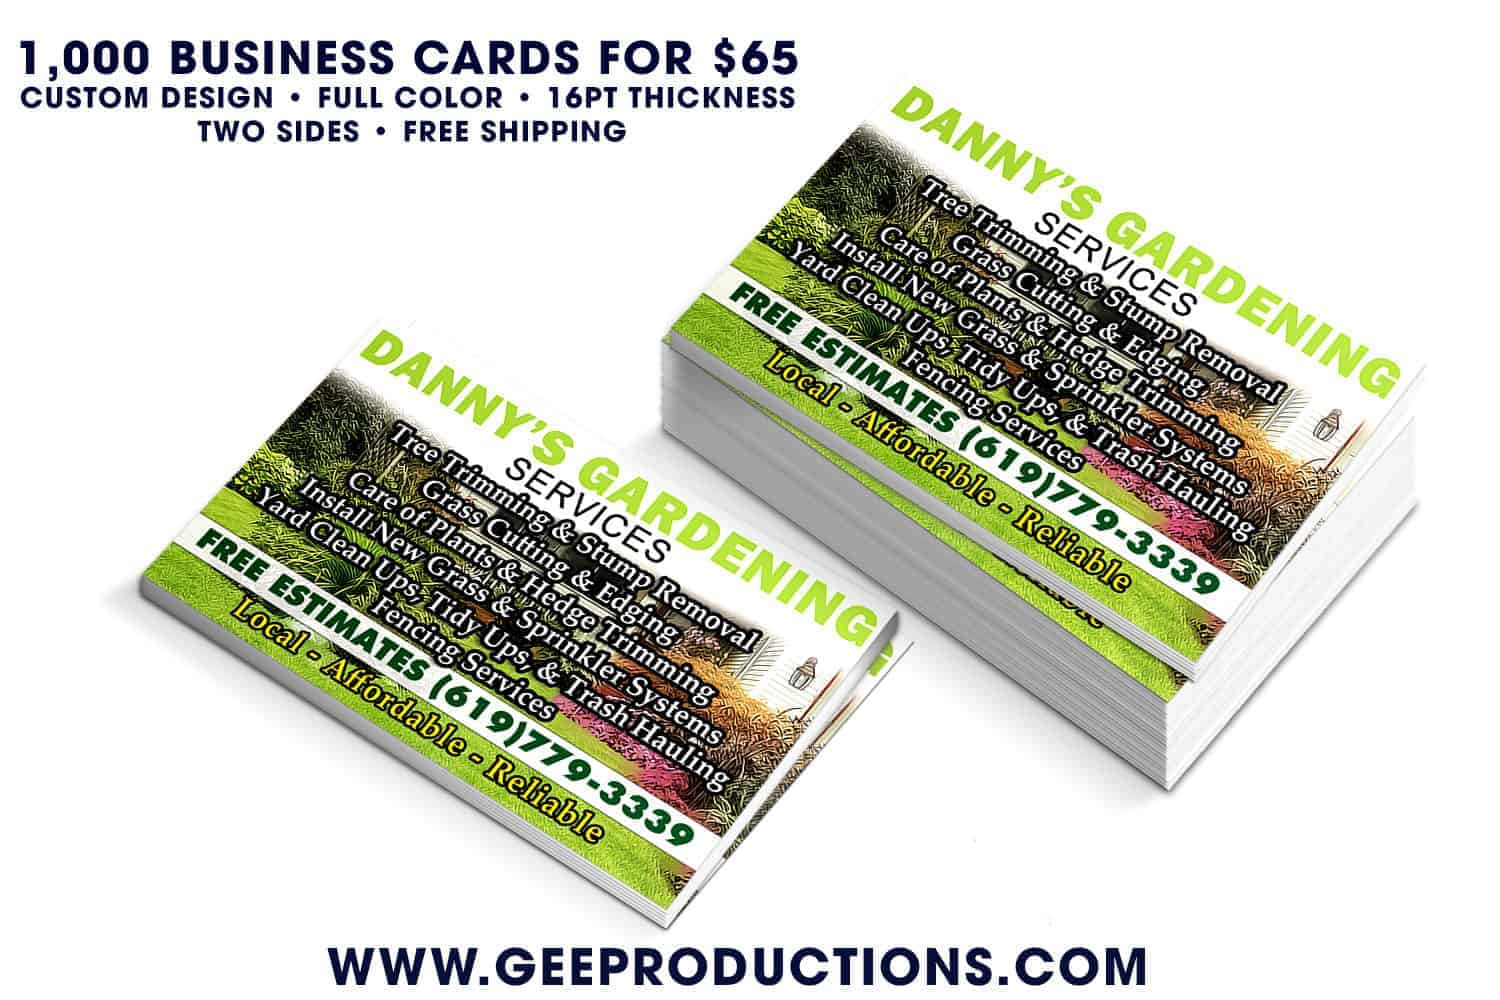 Danny\'s Gardening Services - Business Cards »